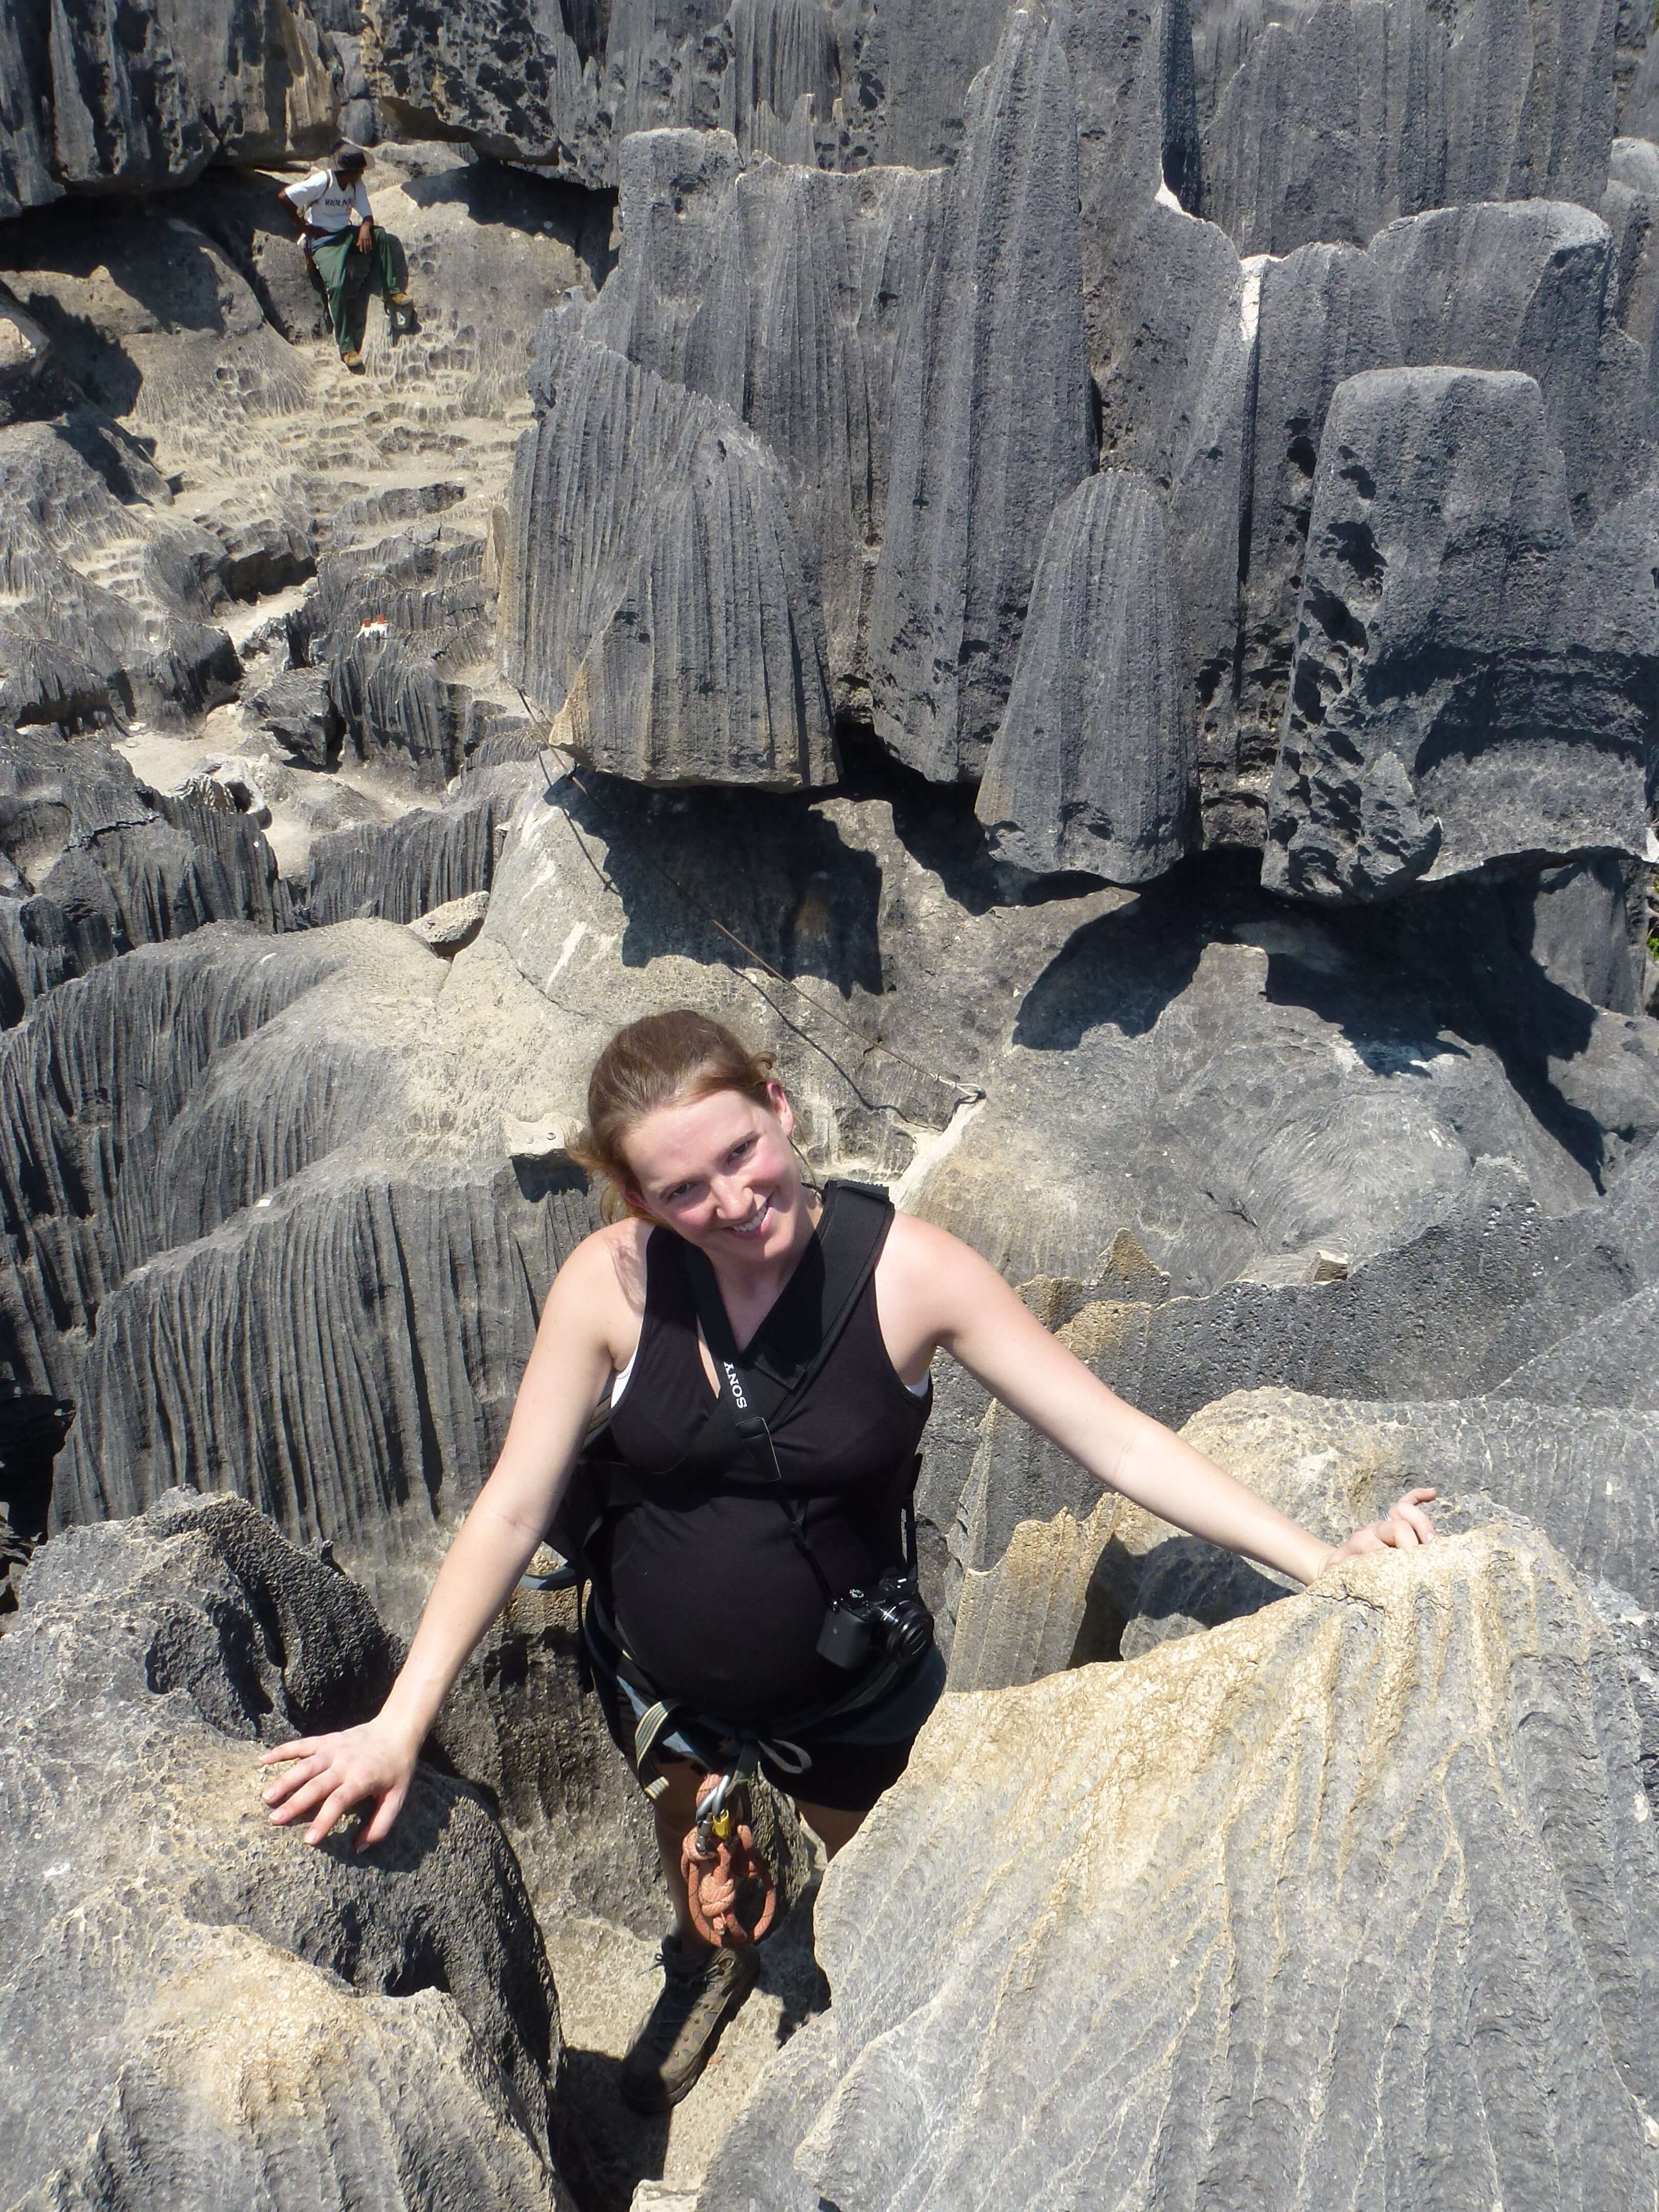 The author is wearing a harness and climbing through tsingy (limestone rocks) in Madagascar. Adventurous activities and travelling while pregnant is possible but check with your care provider first.